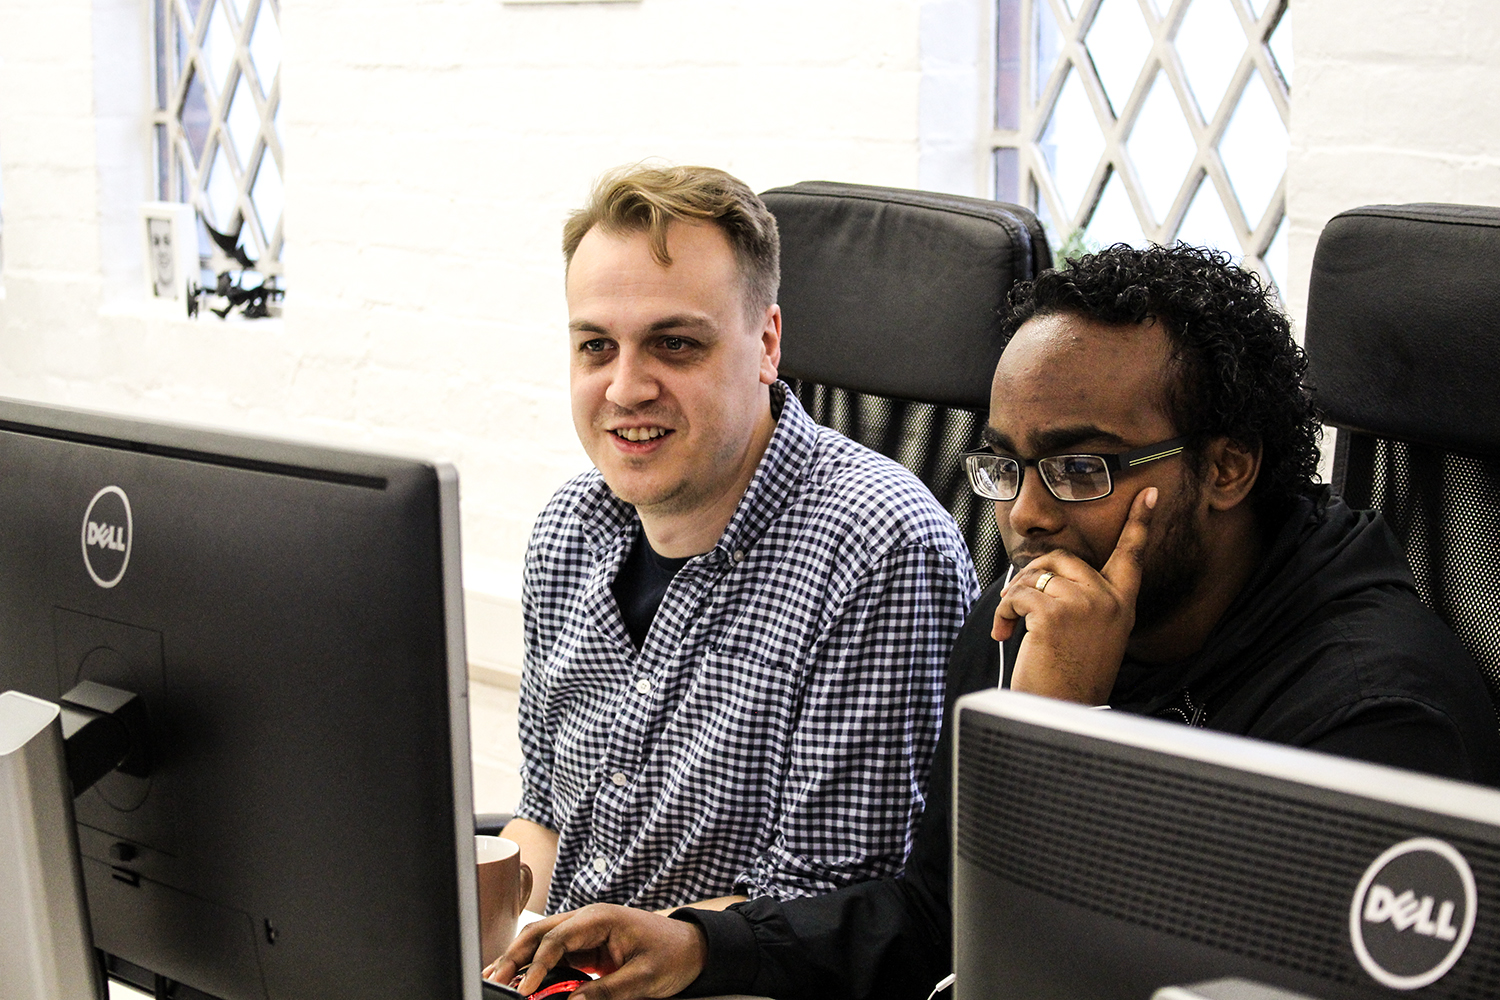 Rashiid, a refugee who has successfully gained a work placement with The Developer Society